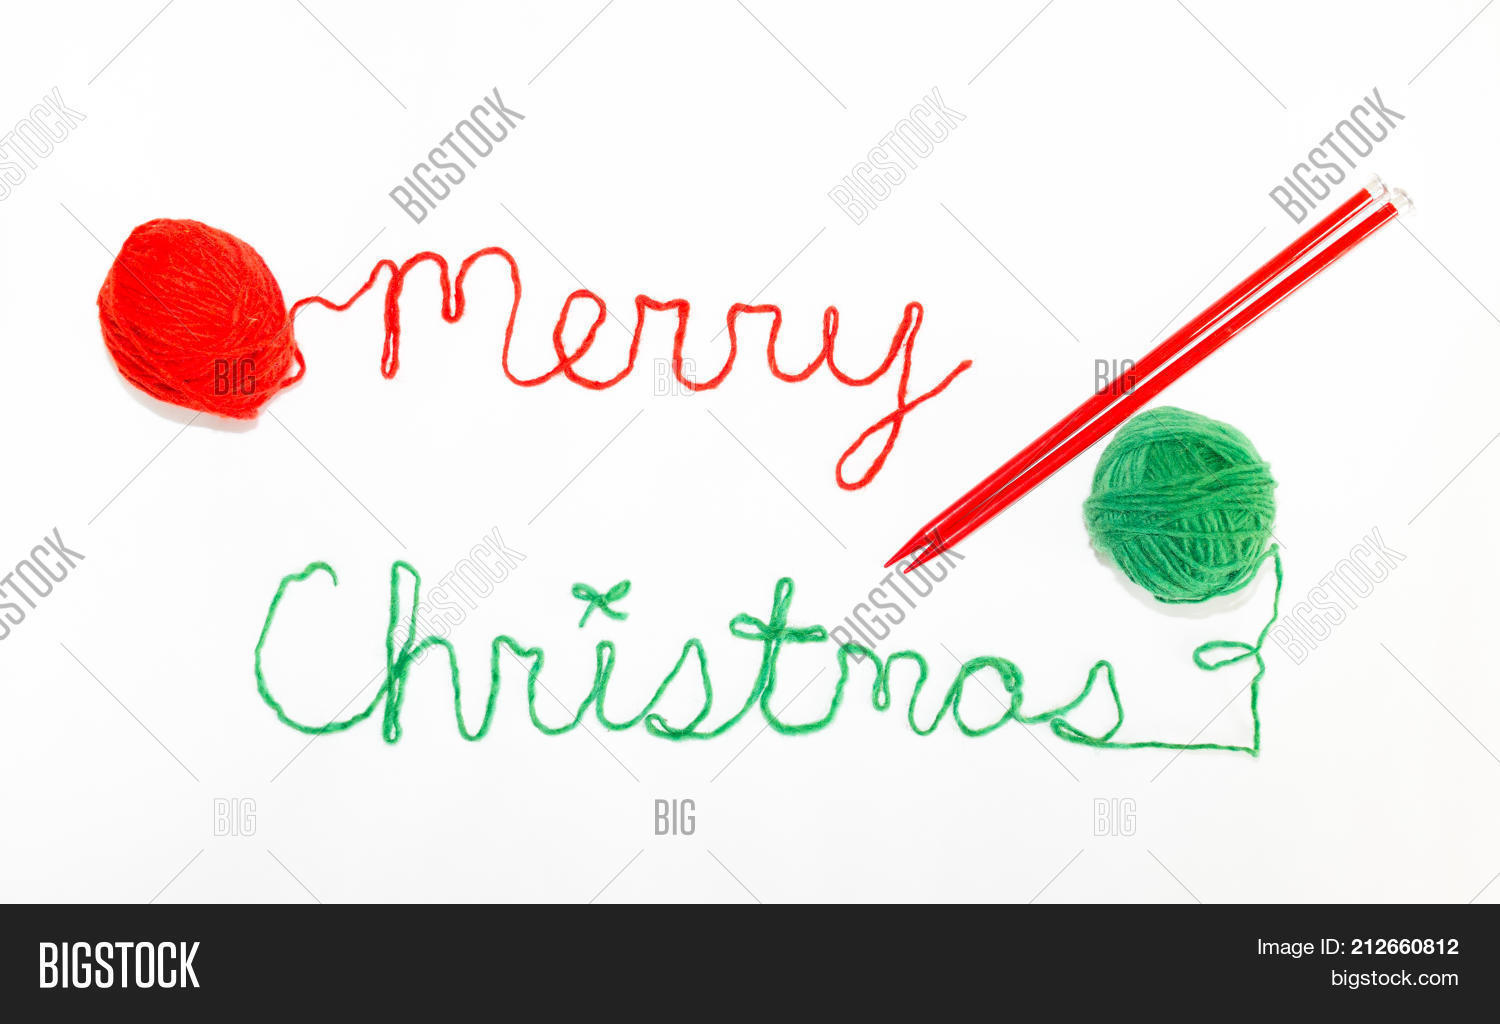 merry christmas written in cursive with red and green yarn and photographed from above against a